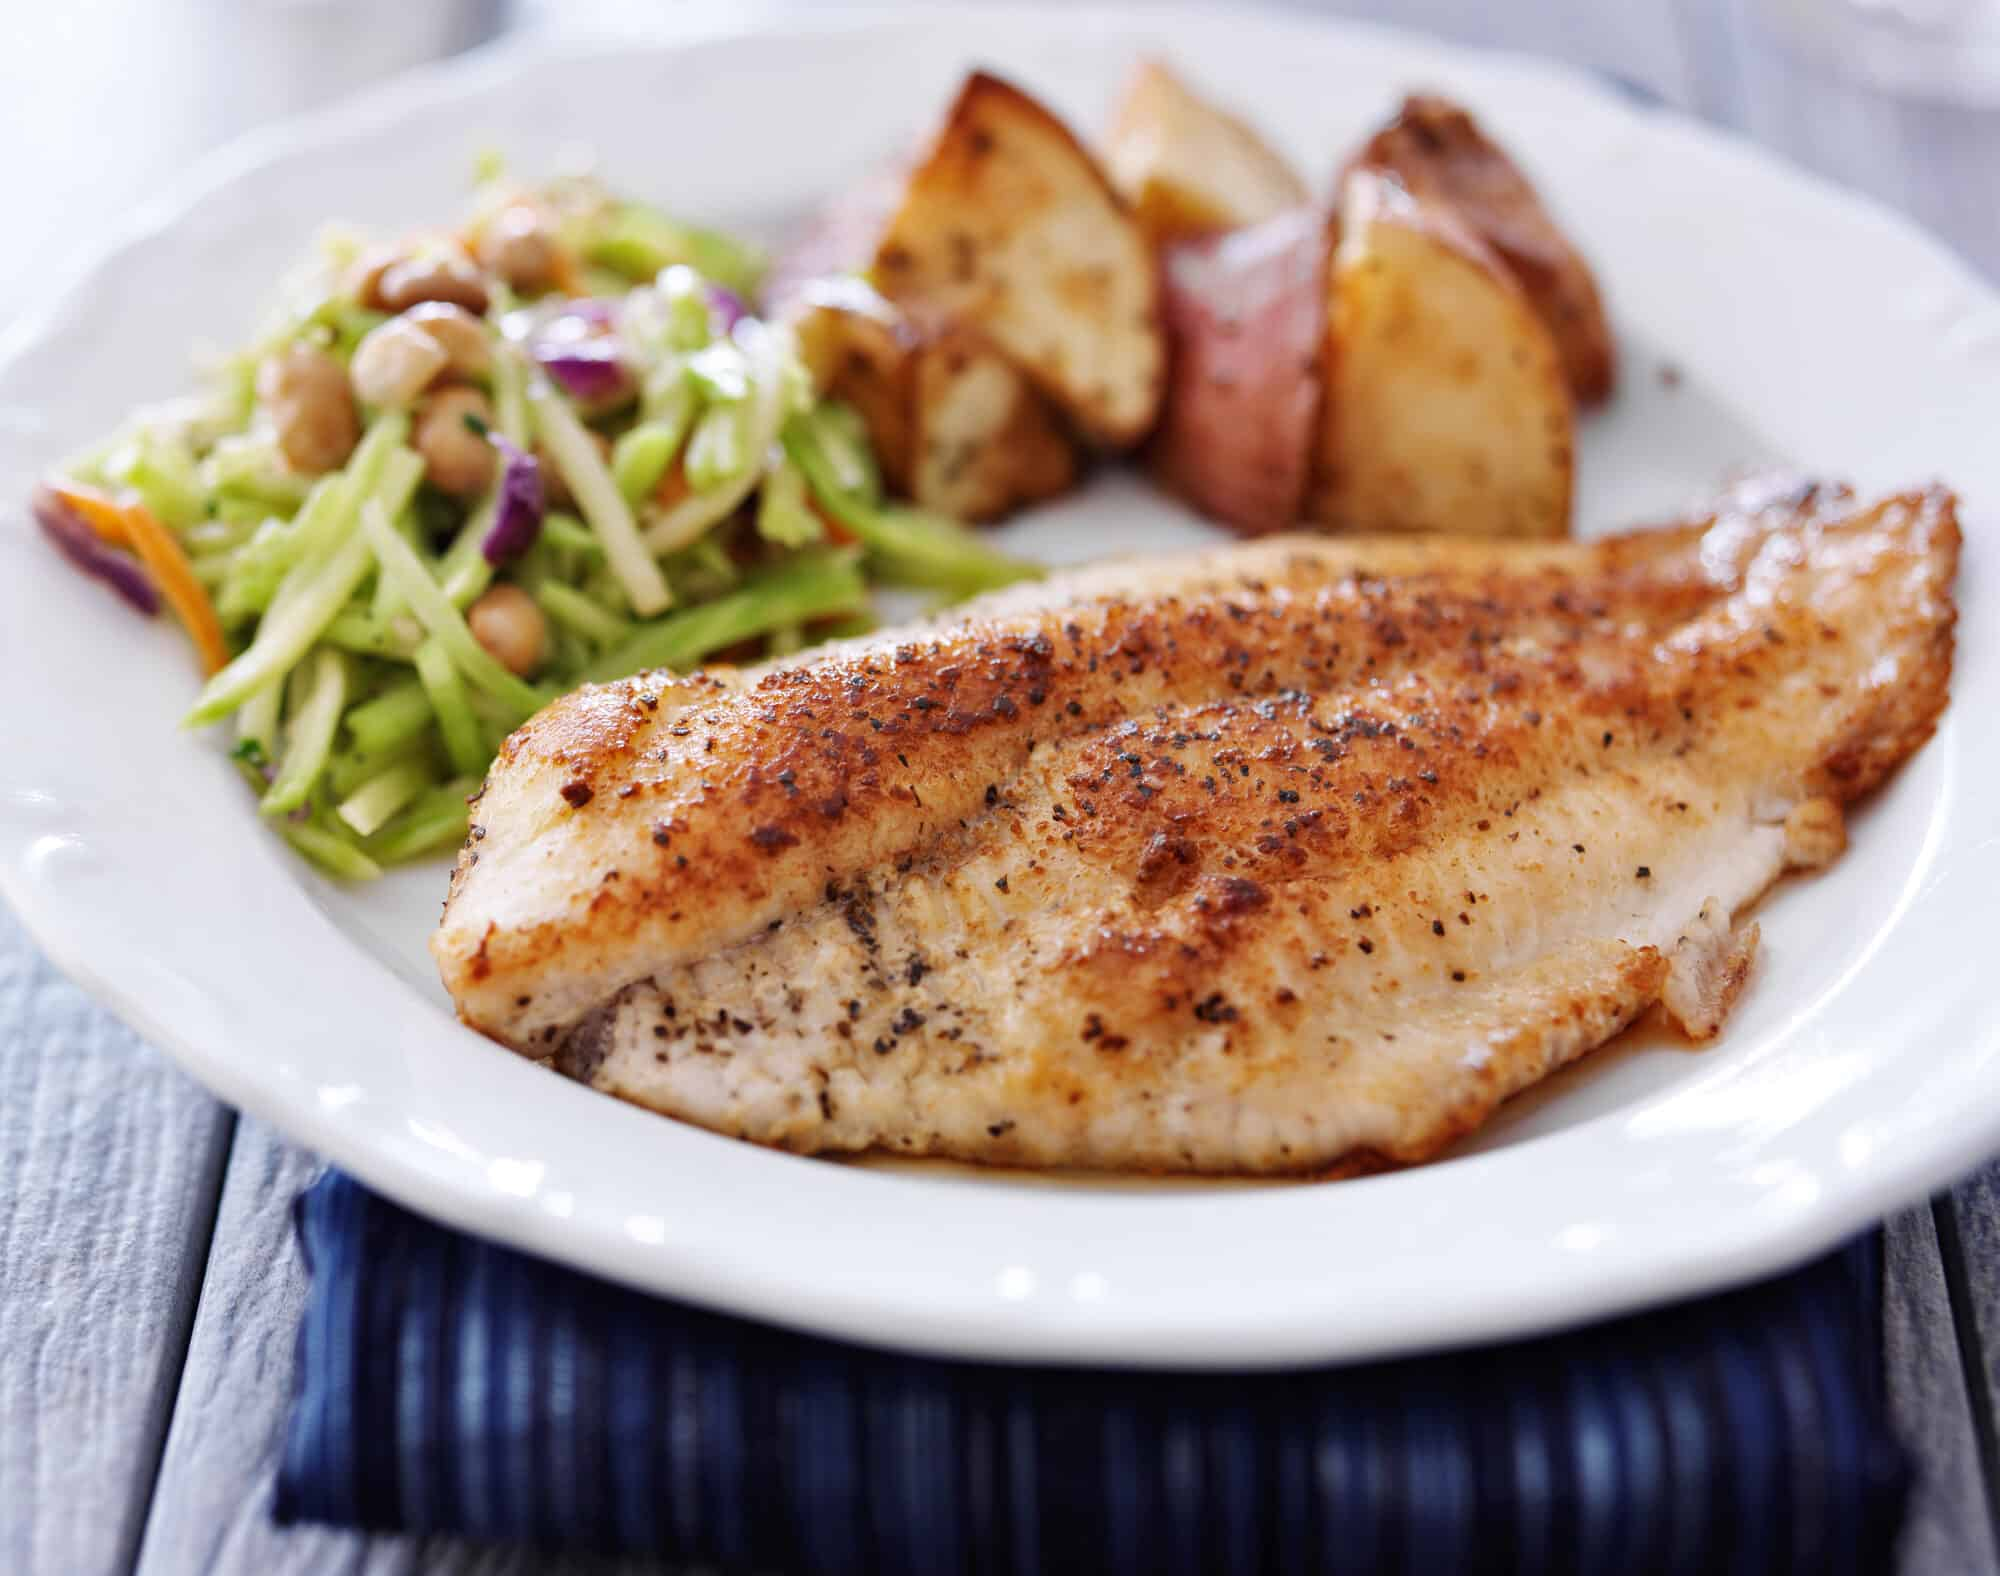 What Are The Best Spices For Tilapia?